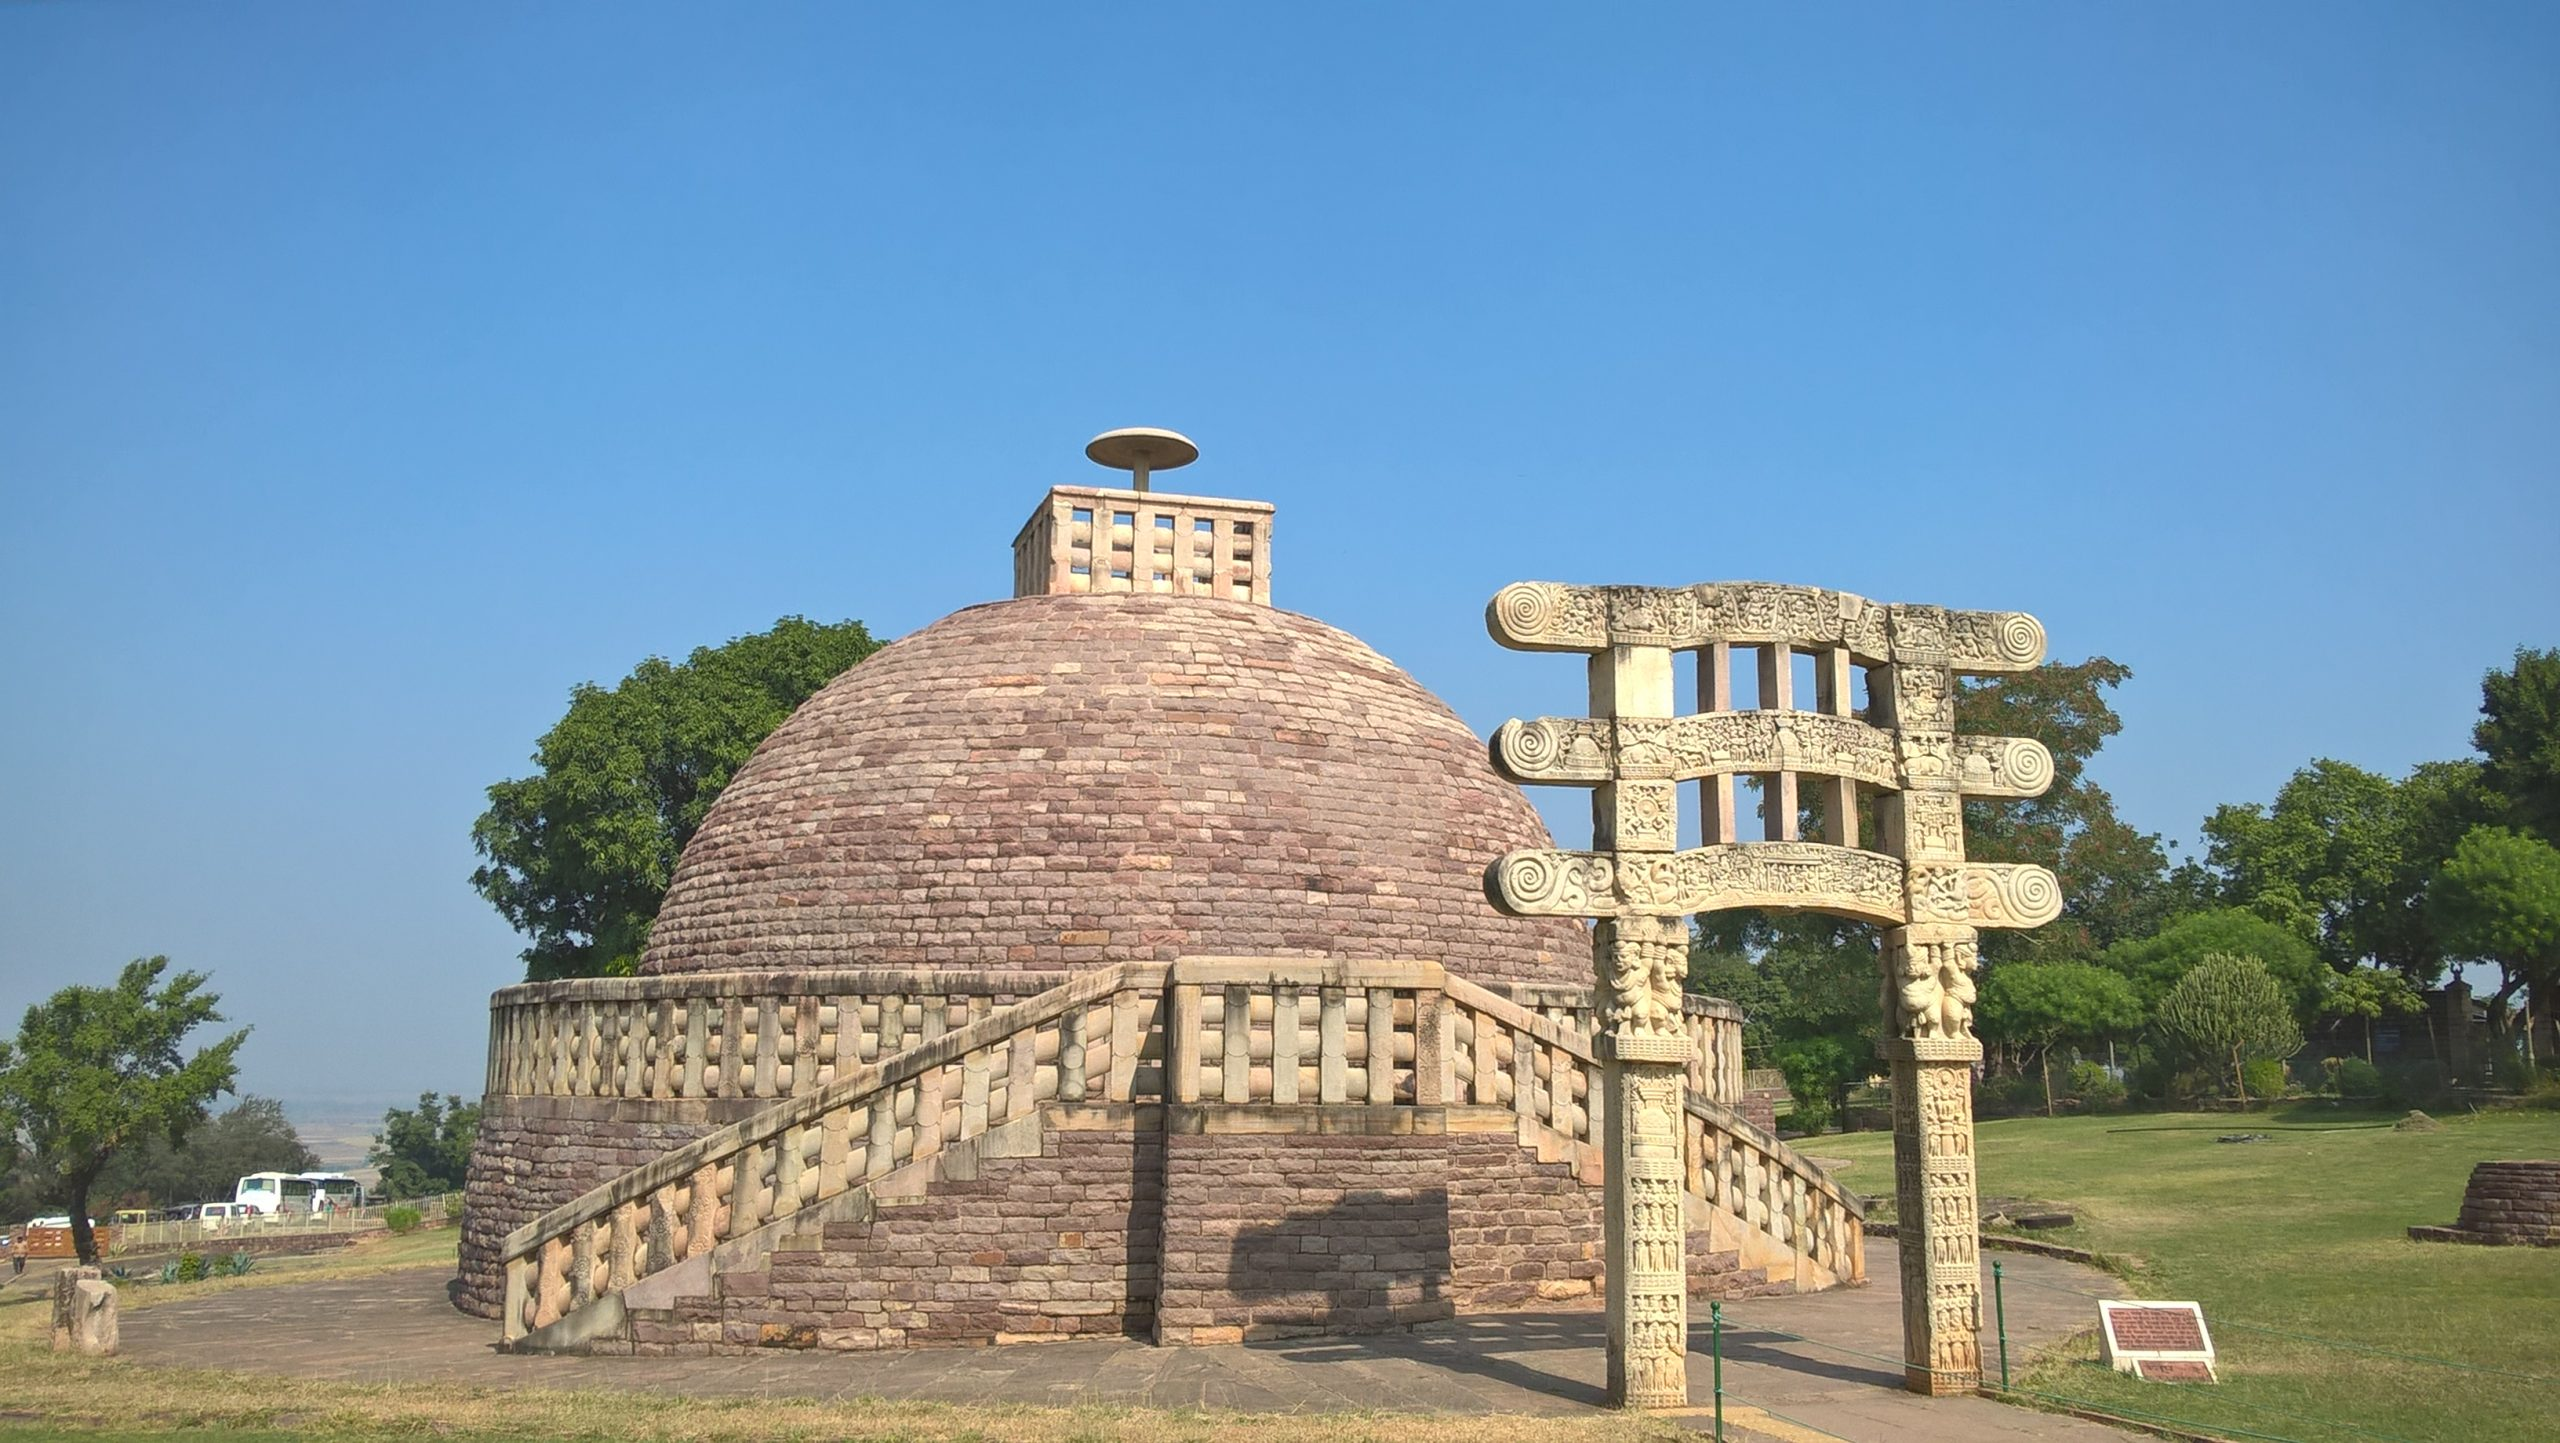 Top Place To Visit In Bhopal-Sanchi Stupa